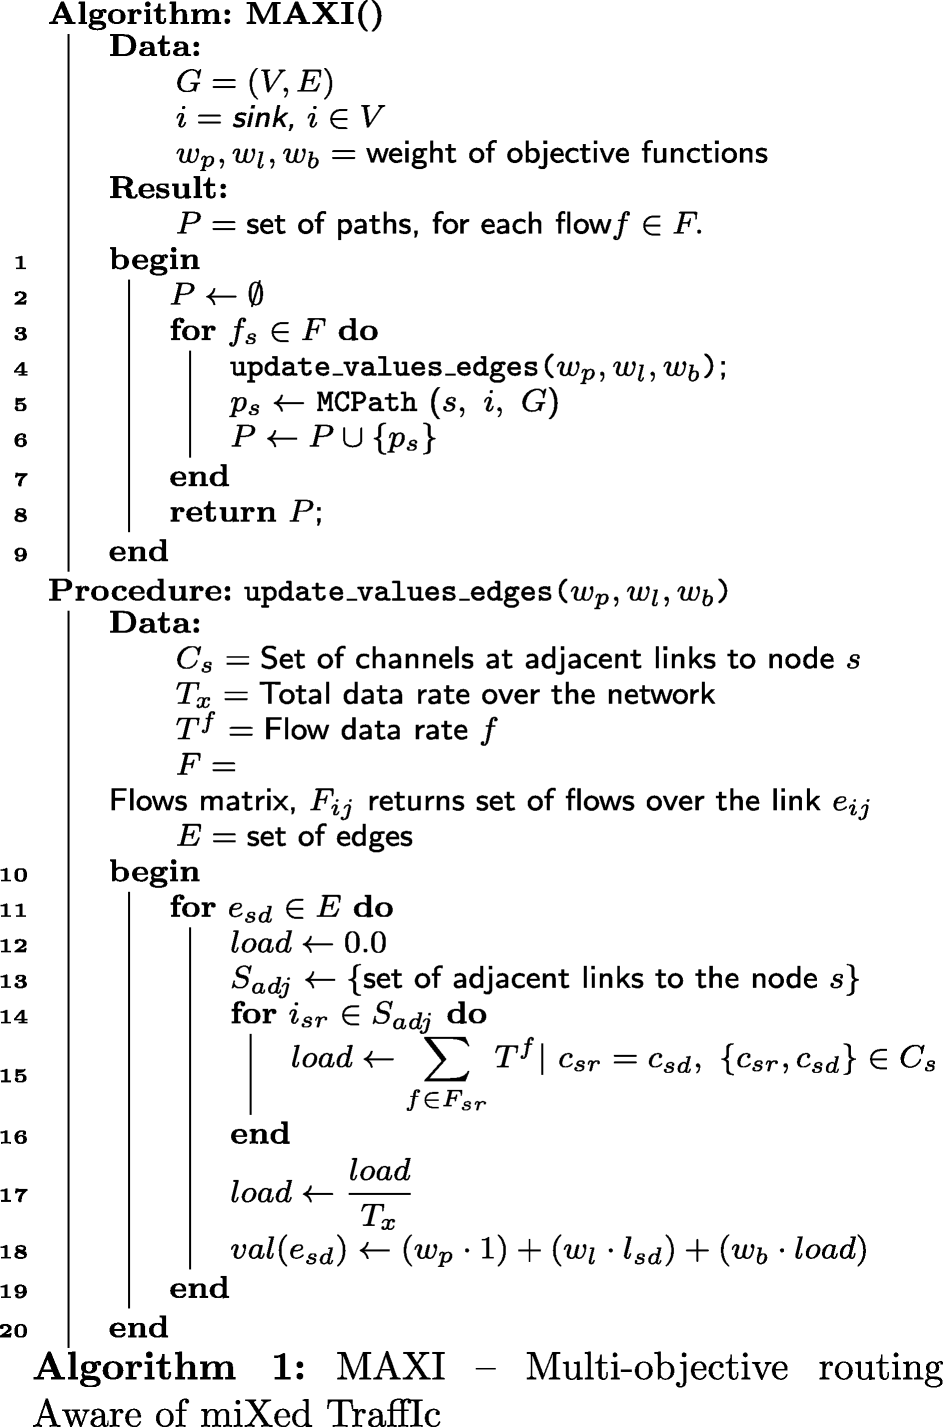 https://static-content.springer.com/image/art%3A10.1186%2Fs13174-019-0108-9/MediaObjects/13174_2019_108_Figa_HTML.png